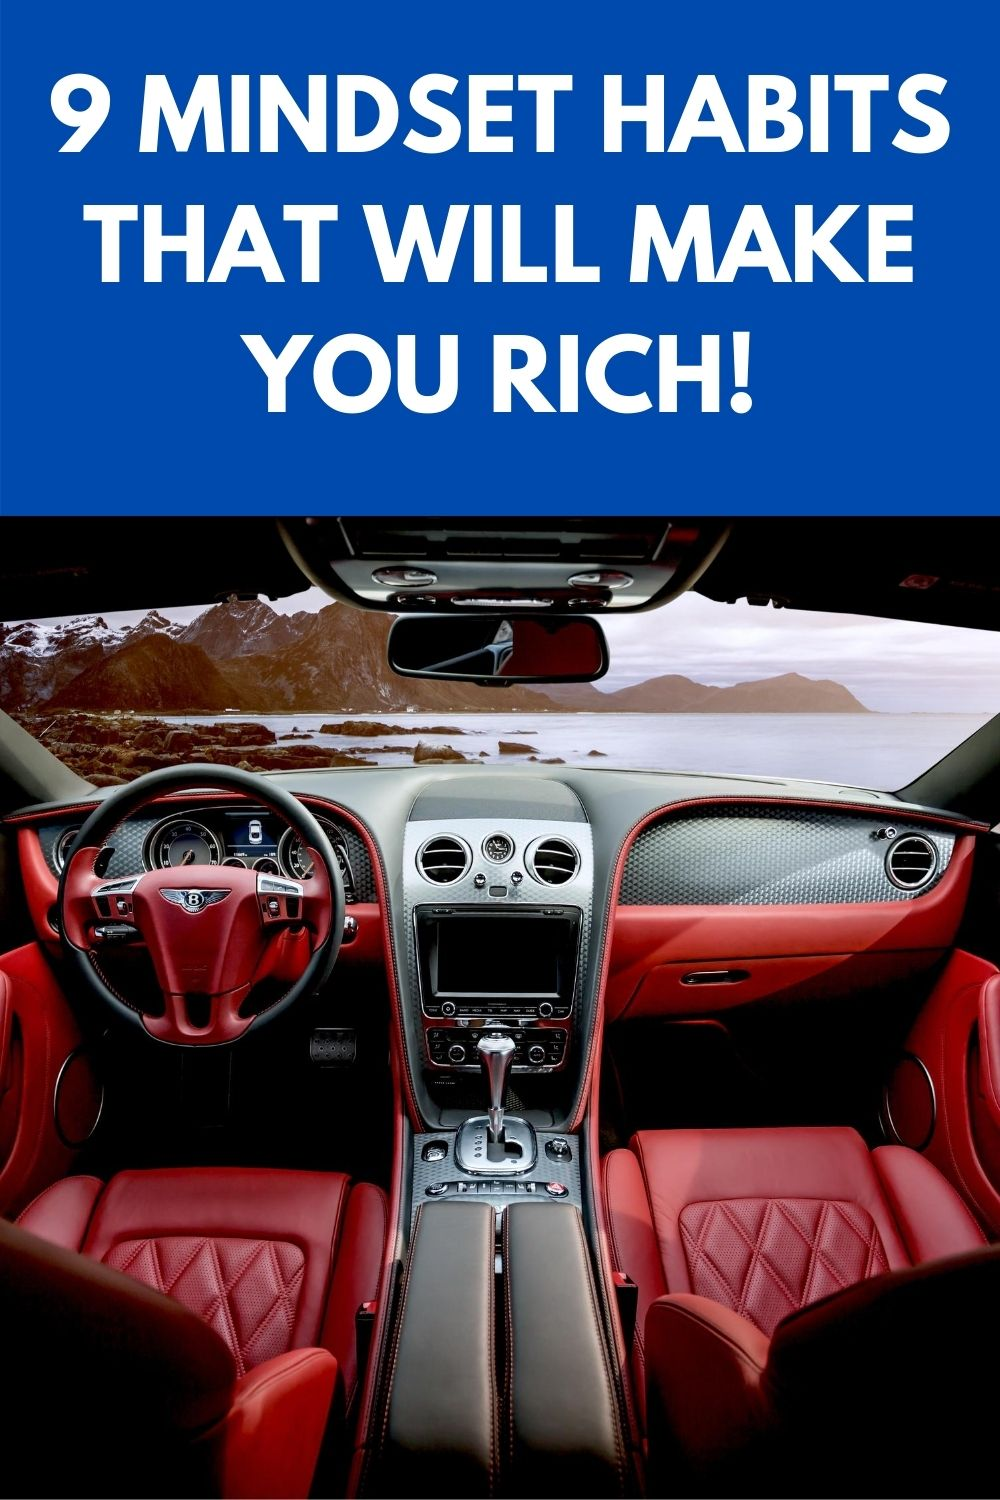 9 mindset habits that will make you rich!